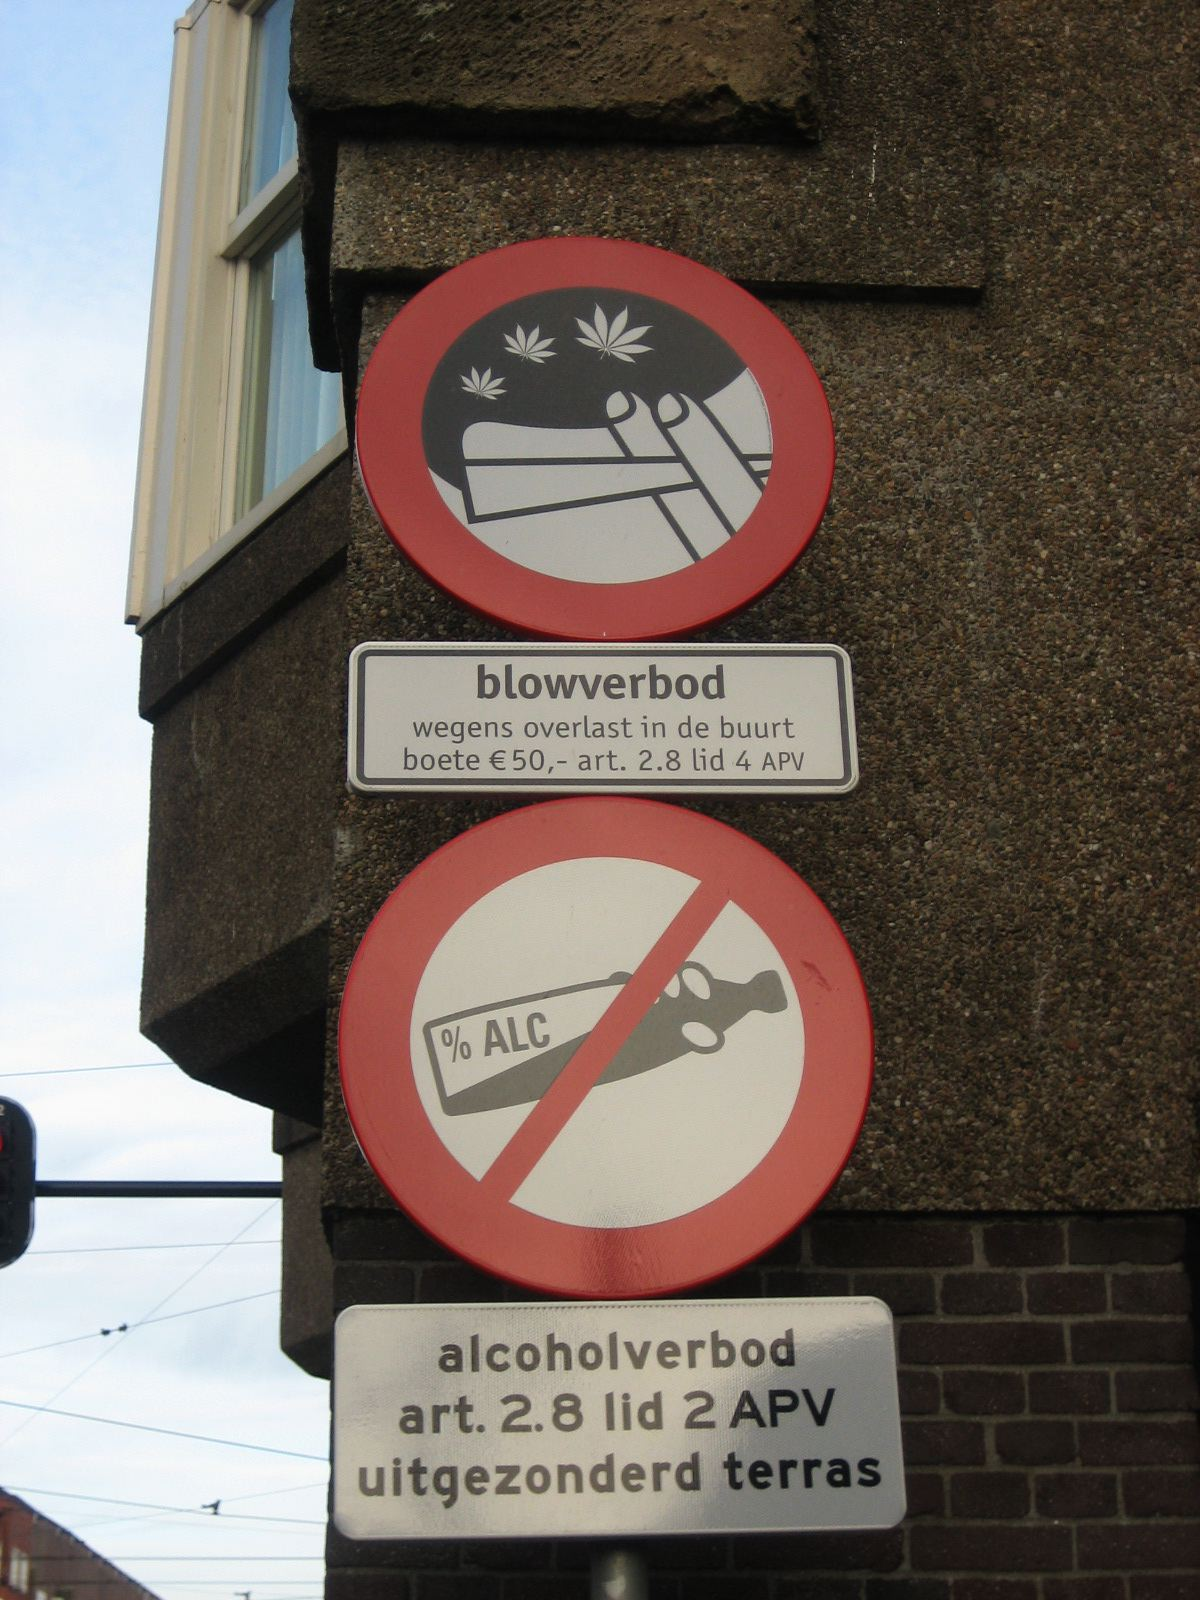 no cannabis smoking allowed